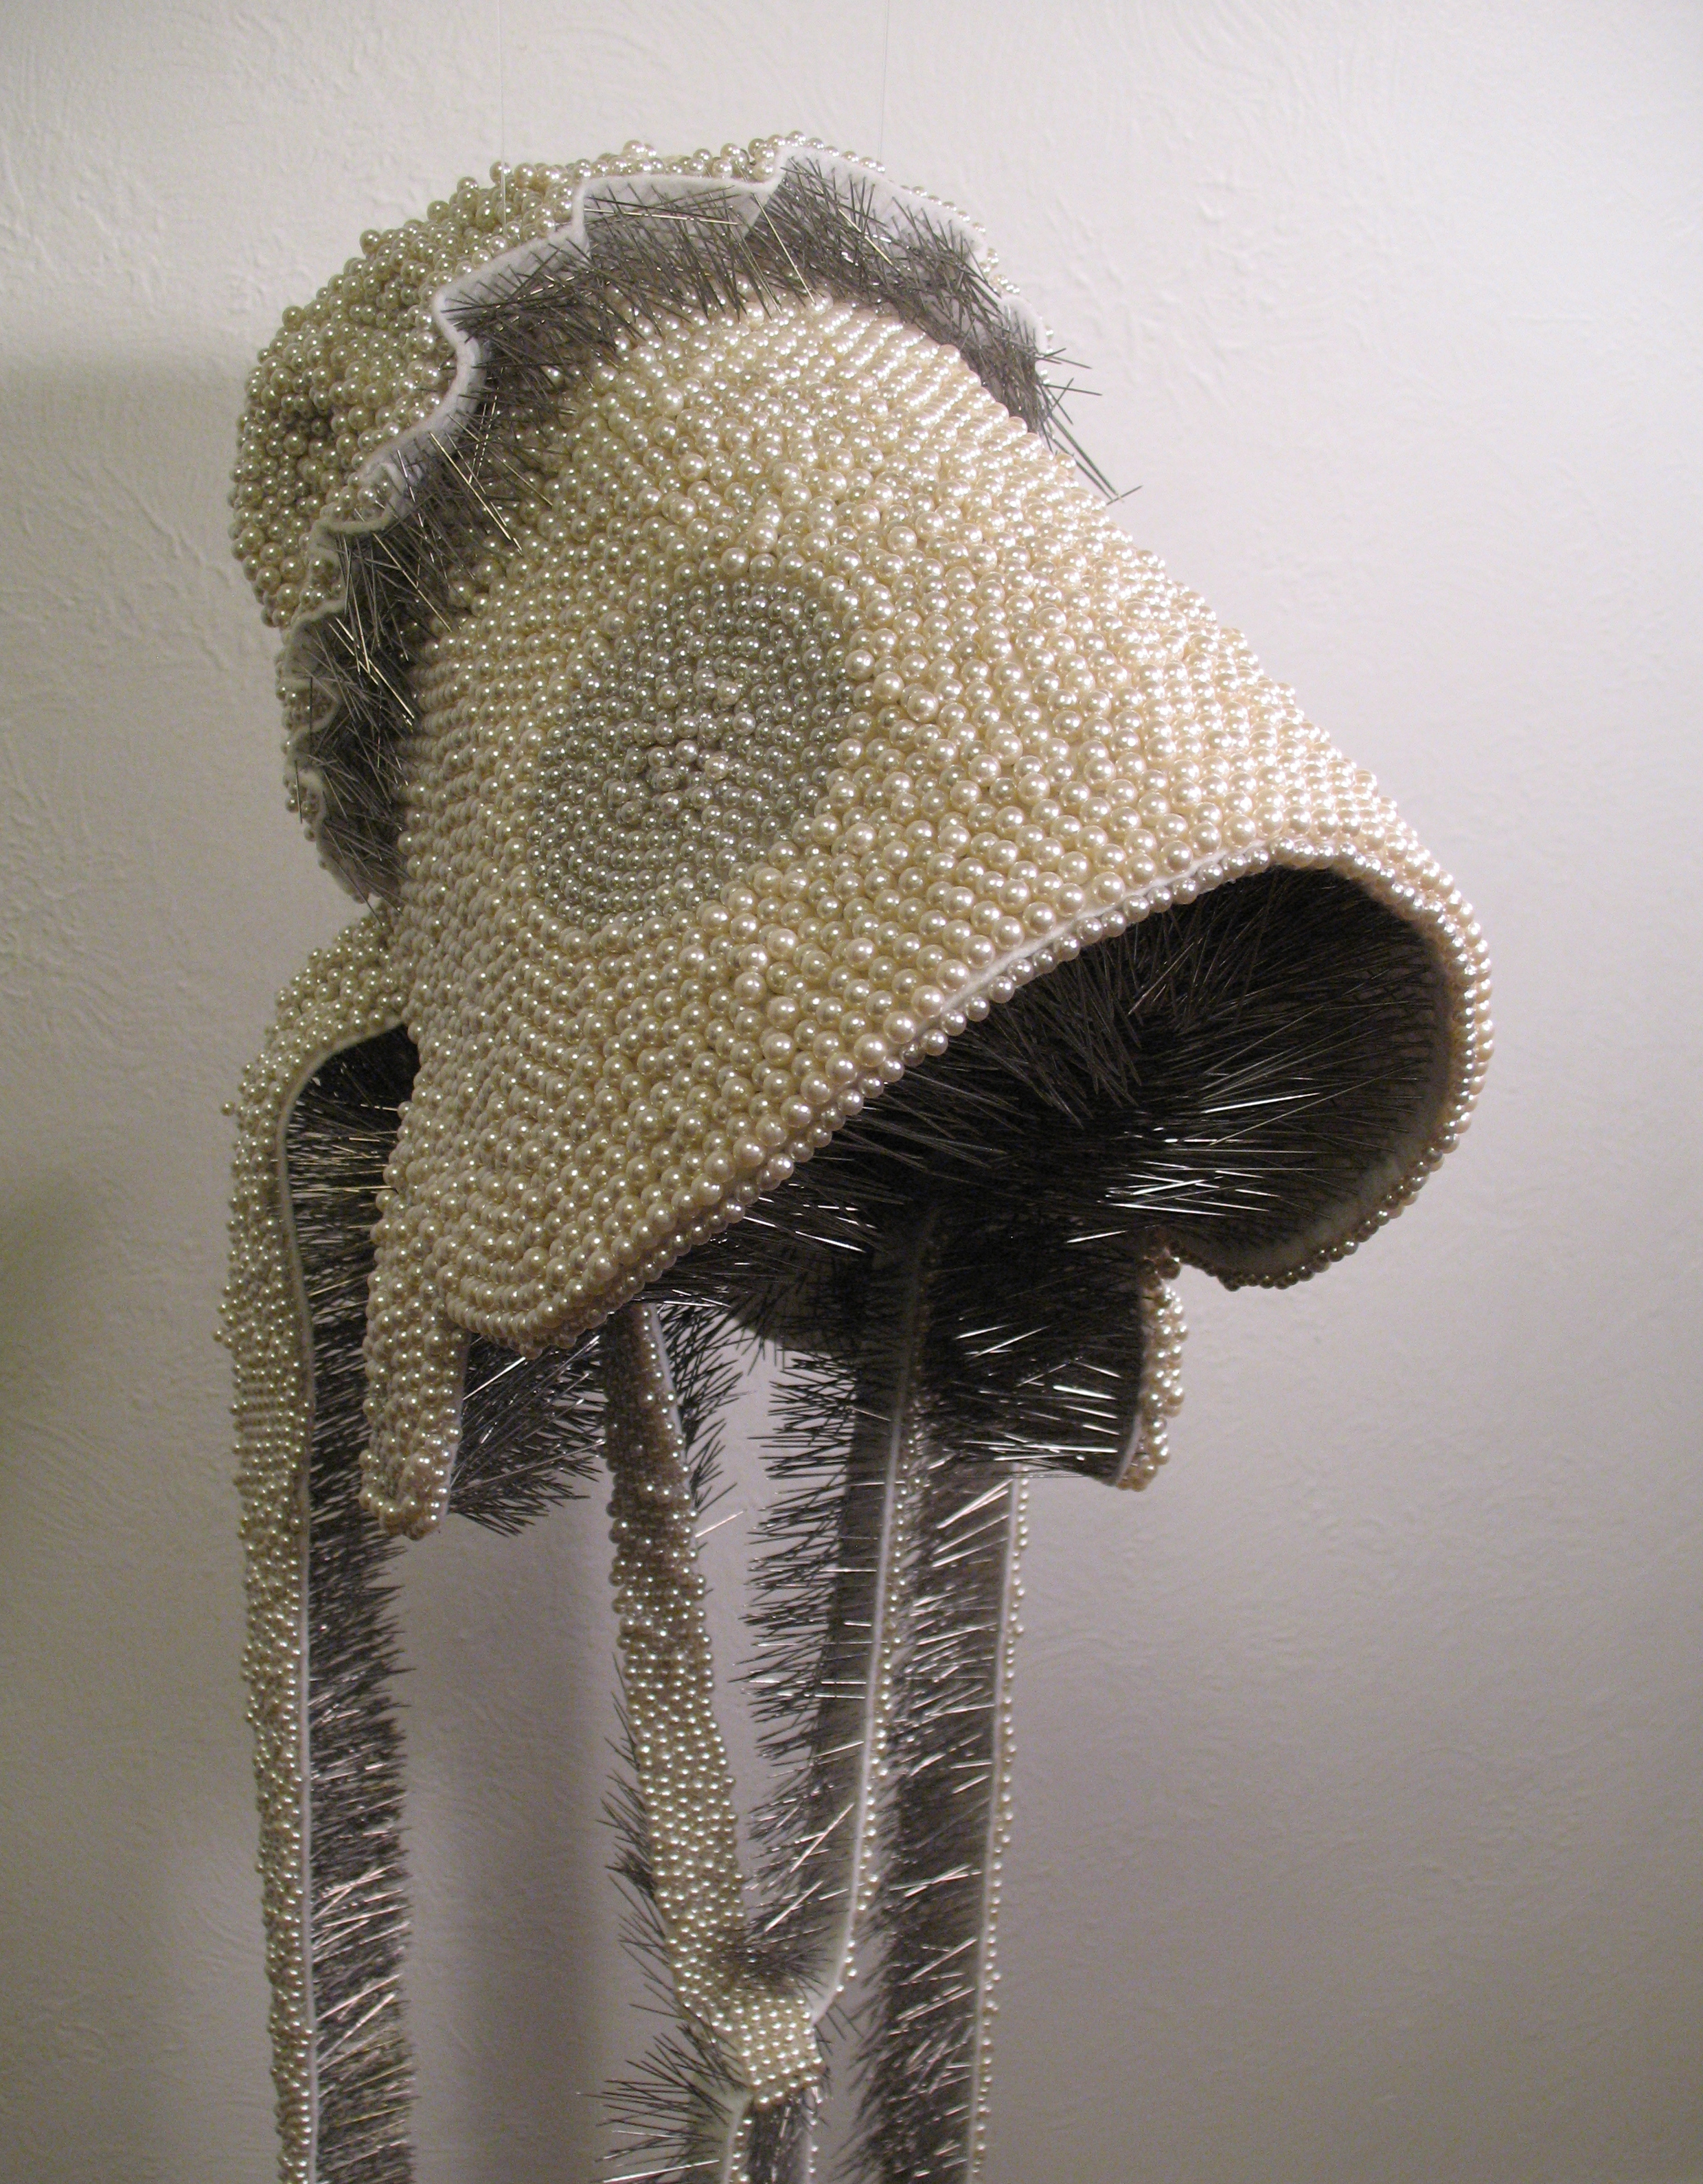 Seer Bonnet II  16,120 pearl corsage pins and fabric, 2008